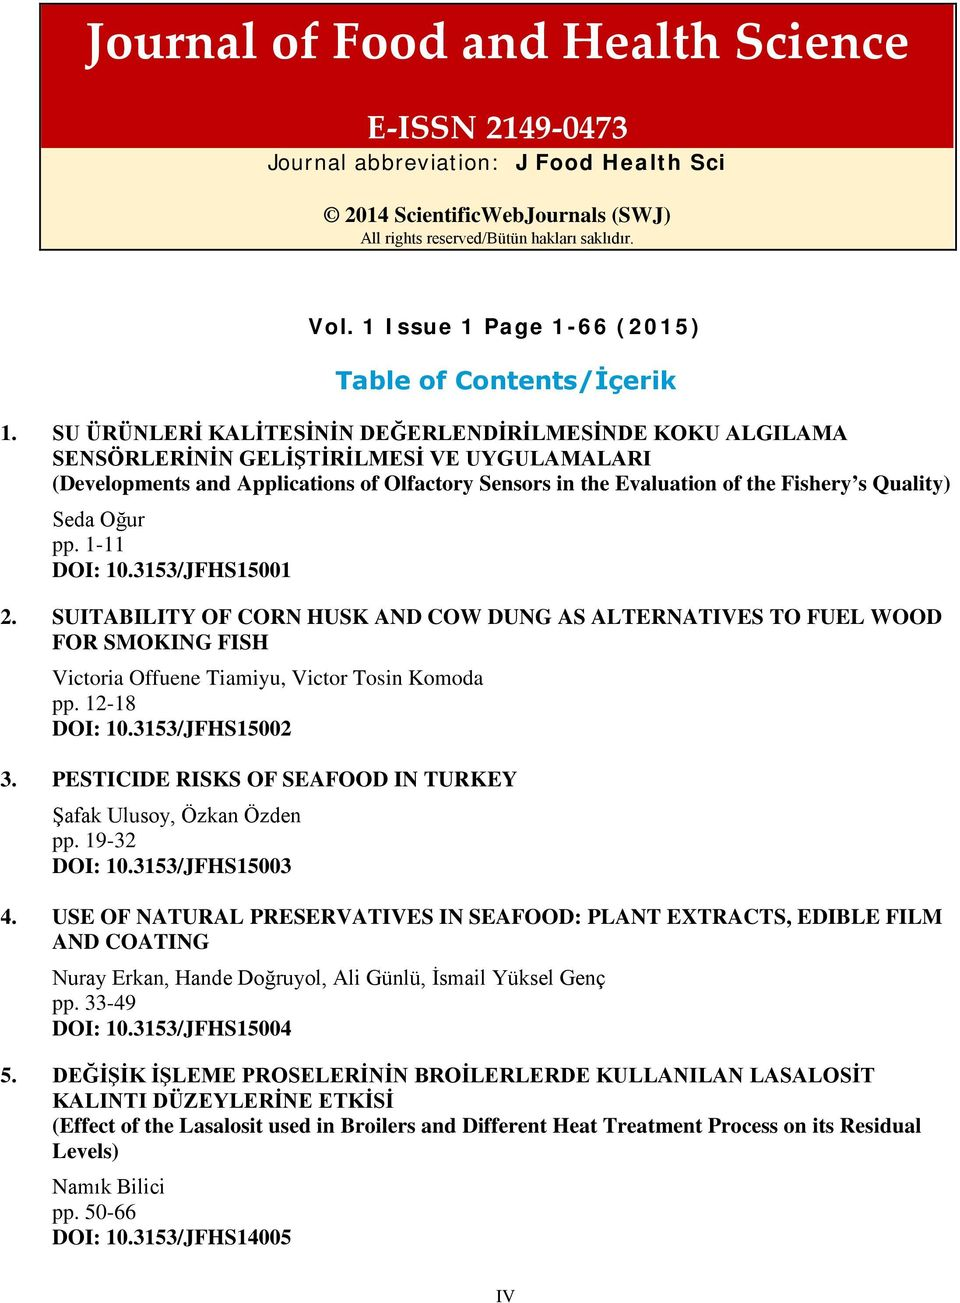 Seda Oğur pp. 1-11 DOI: 10.3153/JFHS15001 2. SUITABILITY OF CORN HUSK AND COW DUNG AS ALTERNATIVES TO FUEL WOOD FOR SMOKING FISH Victoria Offuene Tiamiyu, Victor Tosin Komoda pp. 12-18 DOI: 10.